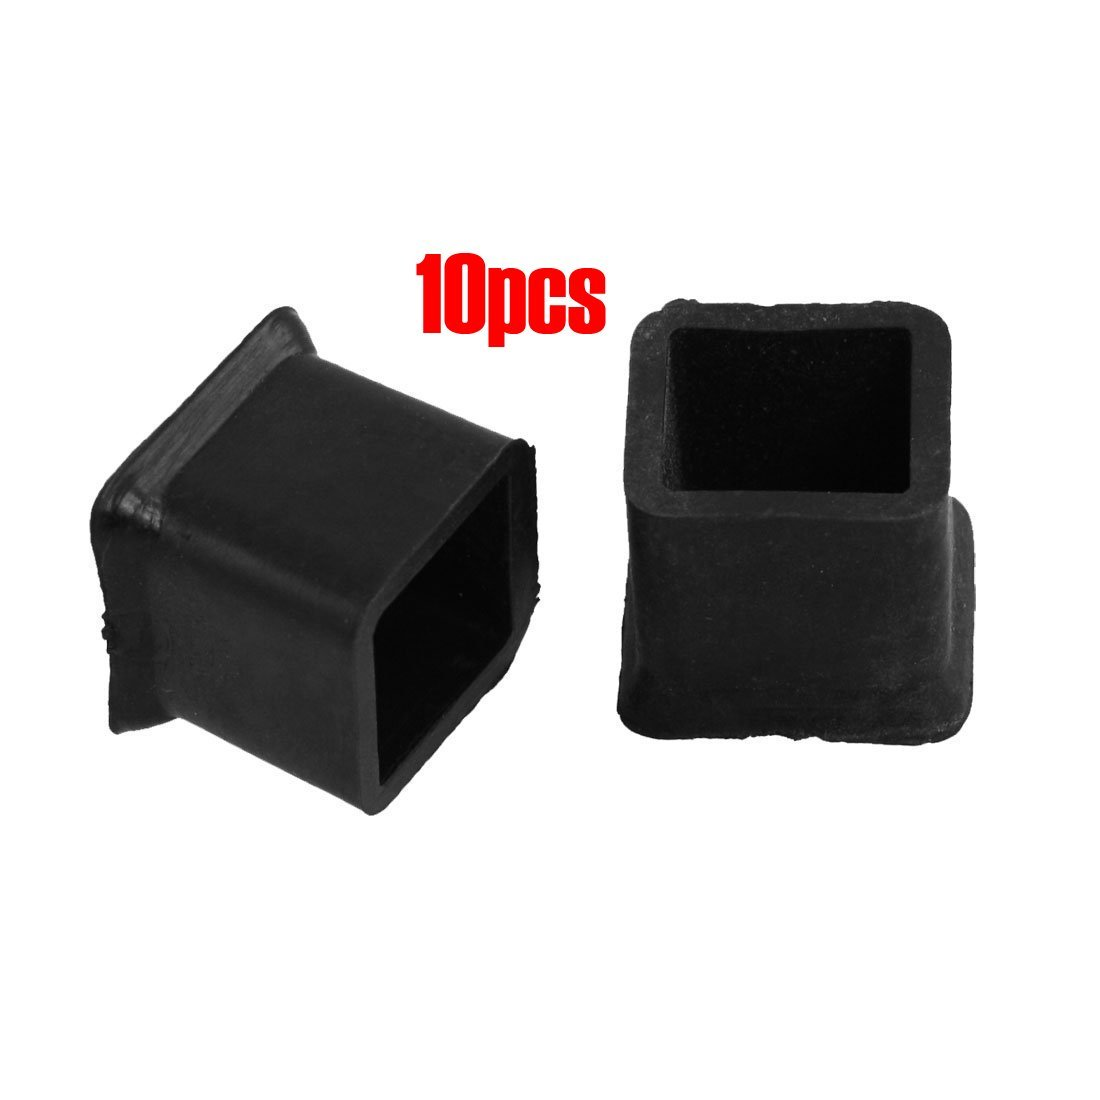 TOOGOO(R) 10 Pcs Furniture Chair Table Leg Rubber Foot Covers Protectors 20mm x 20mm